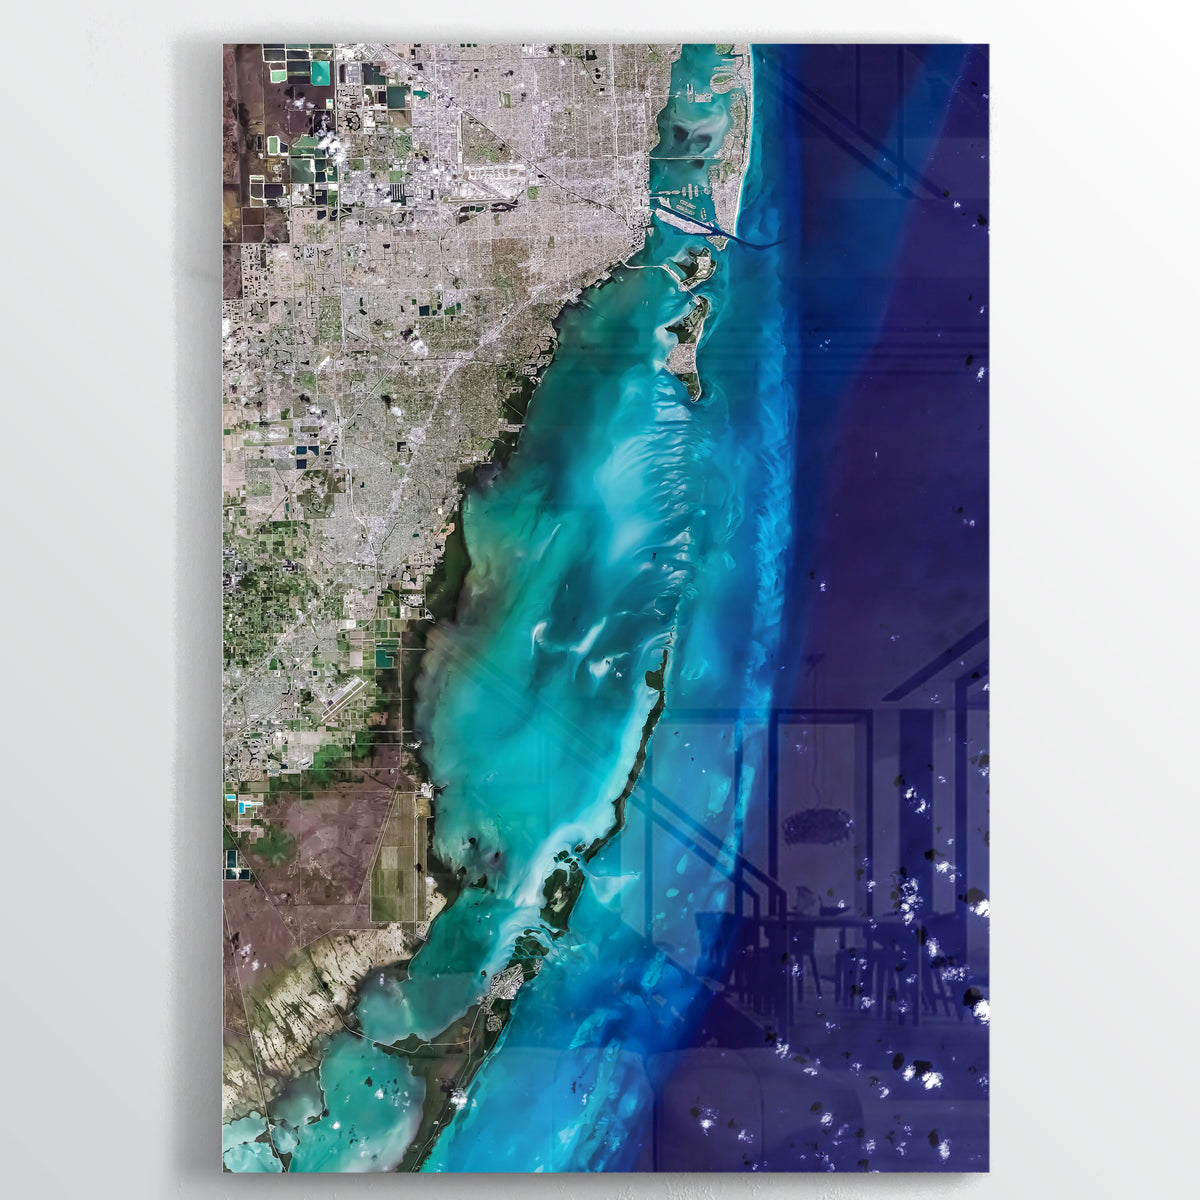 Biscayne Bay Earth Photography - Floating Acrylic Art - Point Two Design